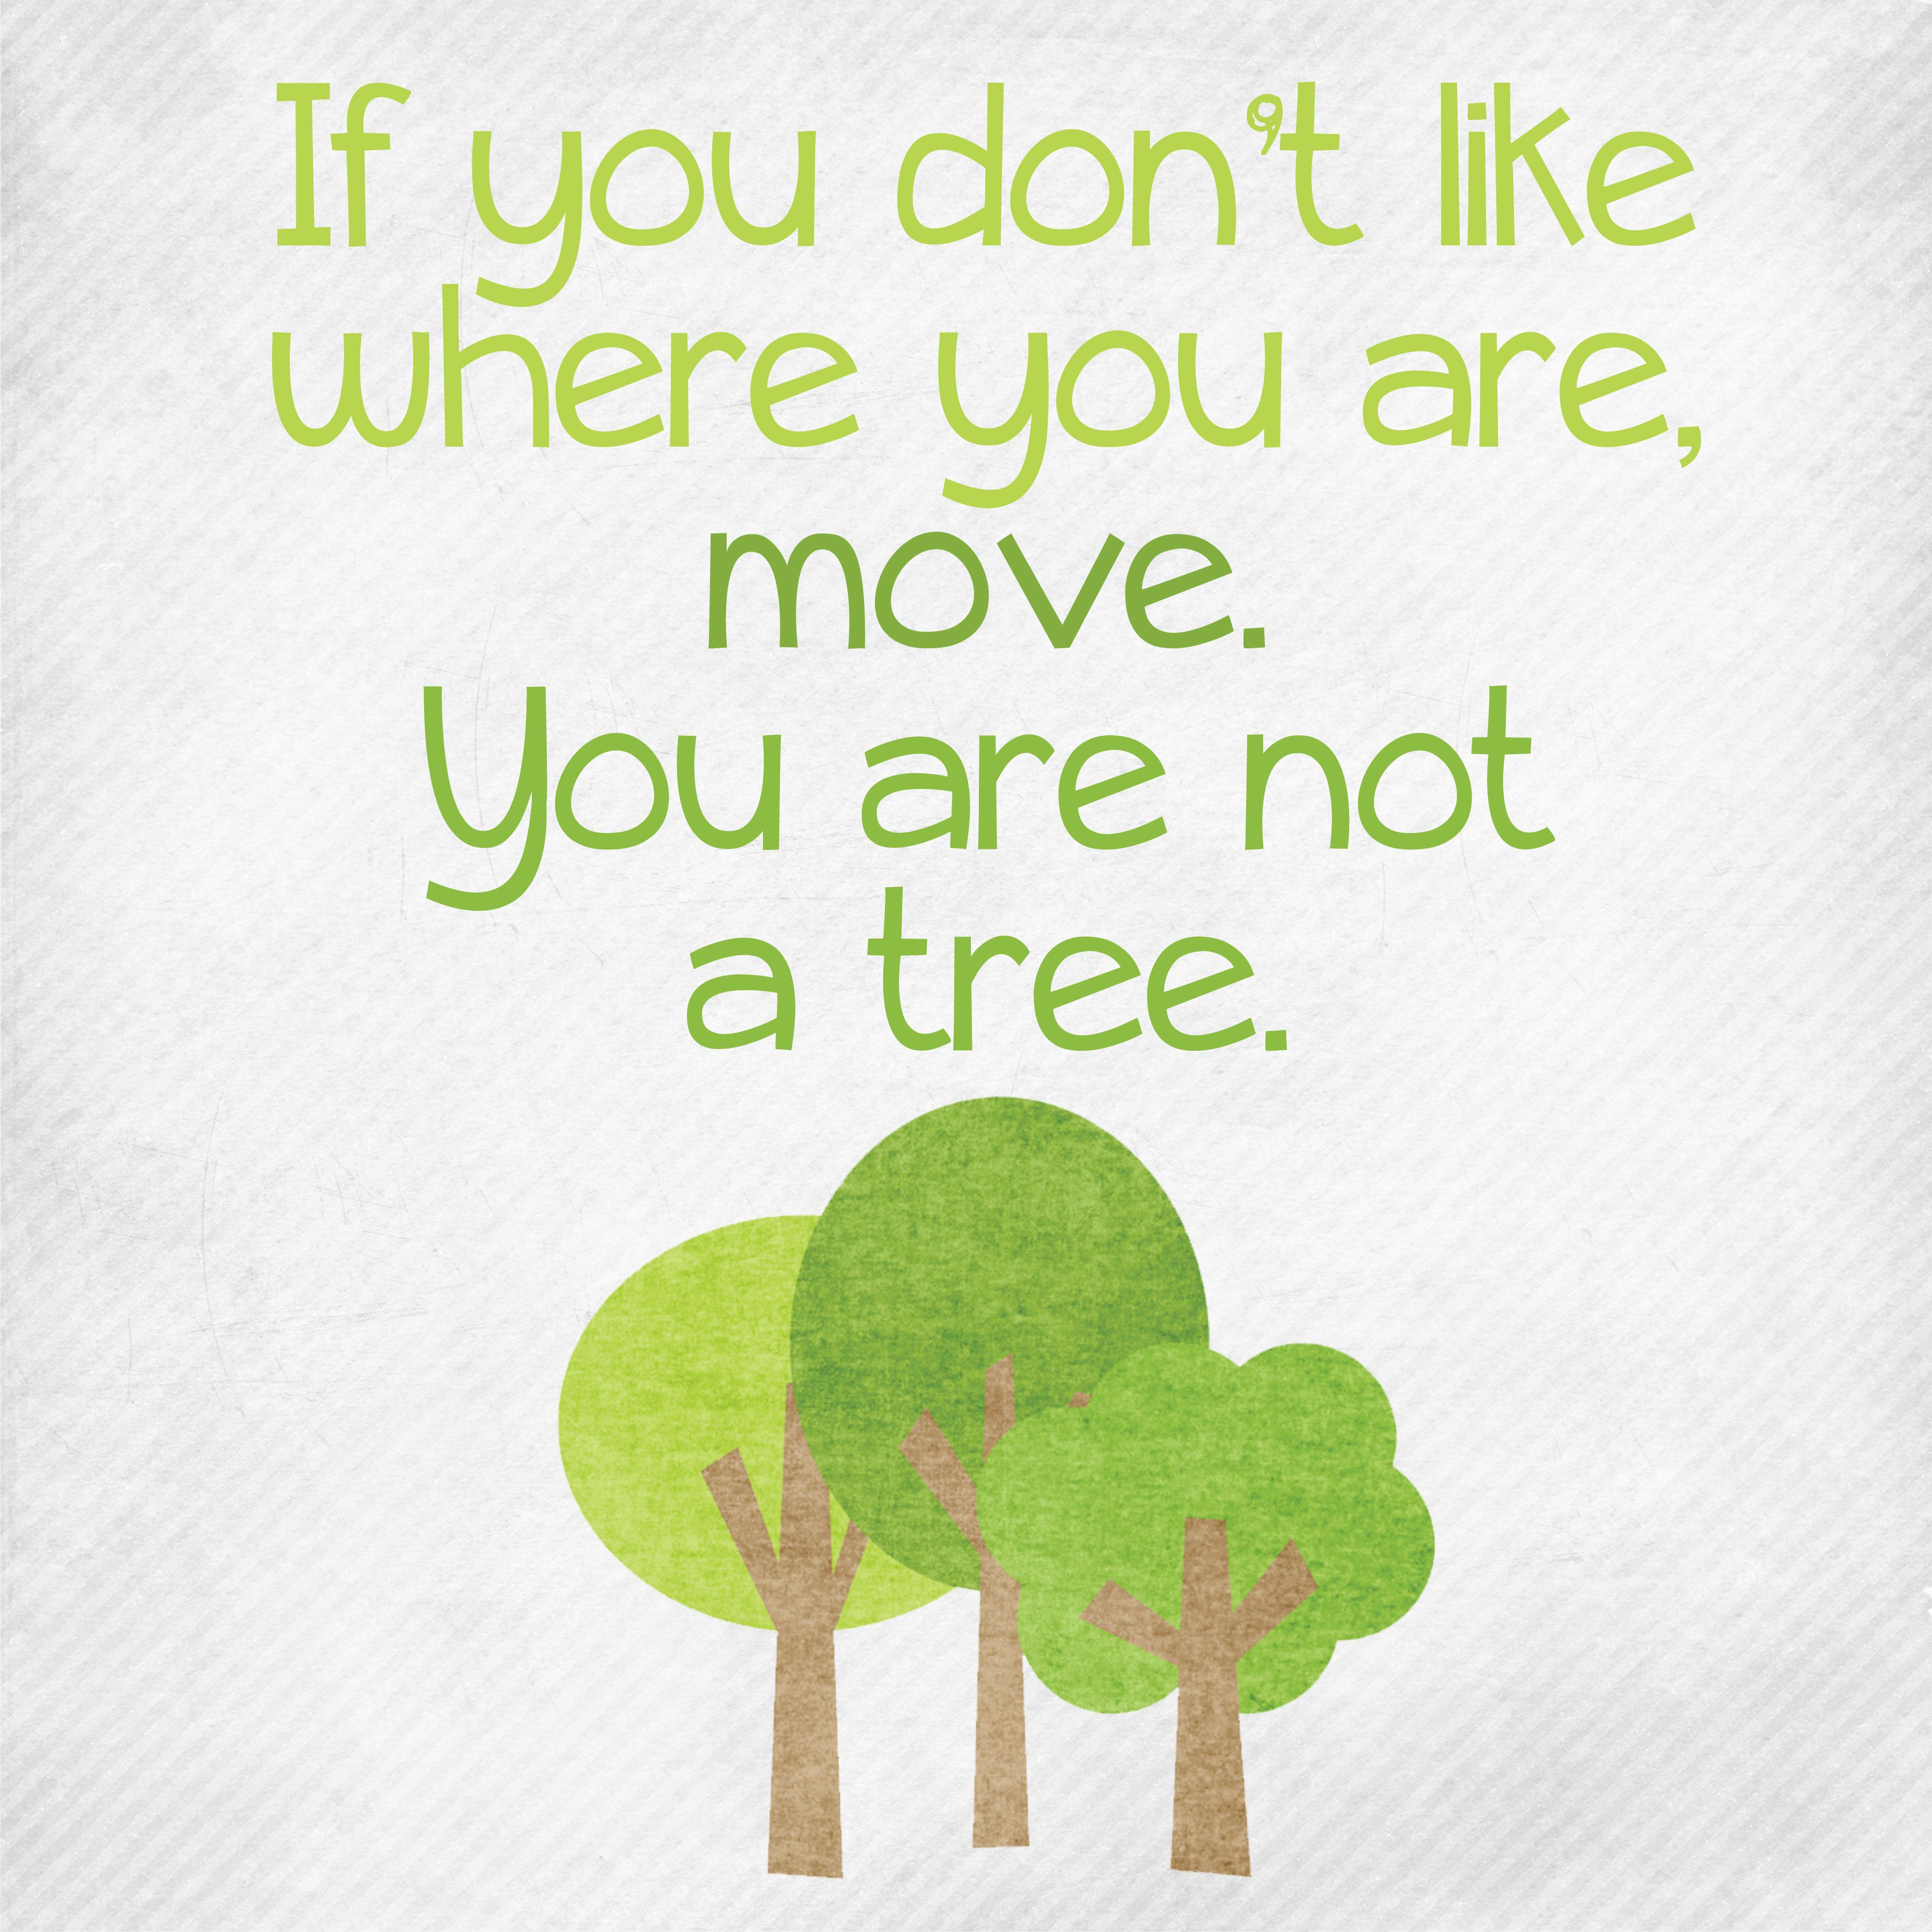 Why I Don T Like Motivational Quotes: Change: If You Don't Like Where You Are, Move. You Are Not